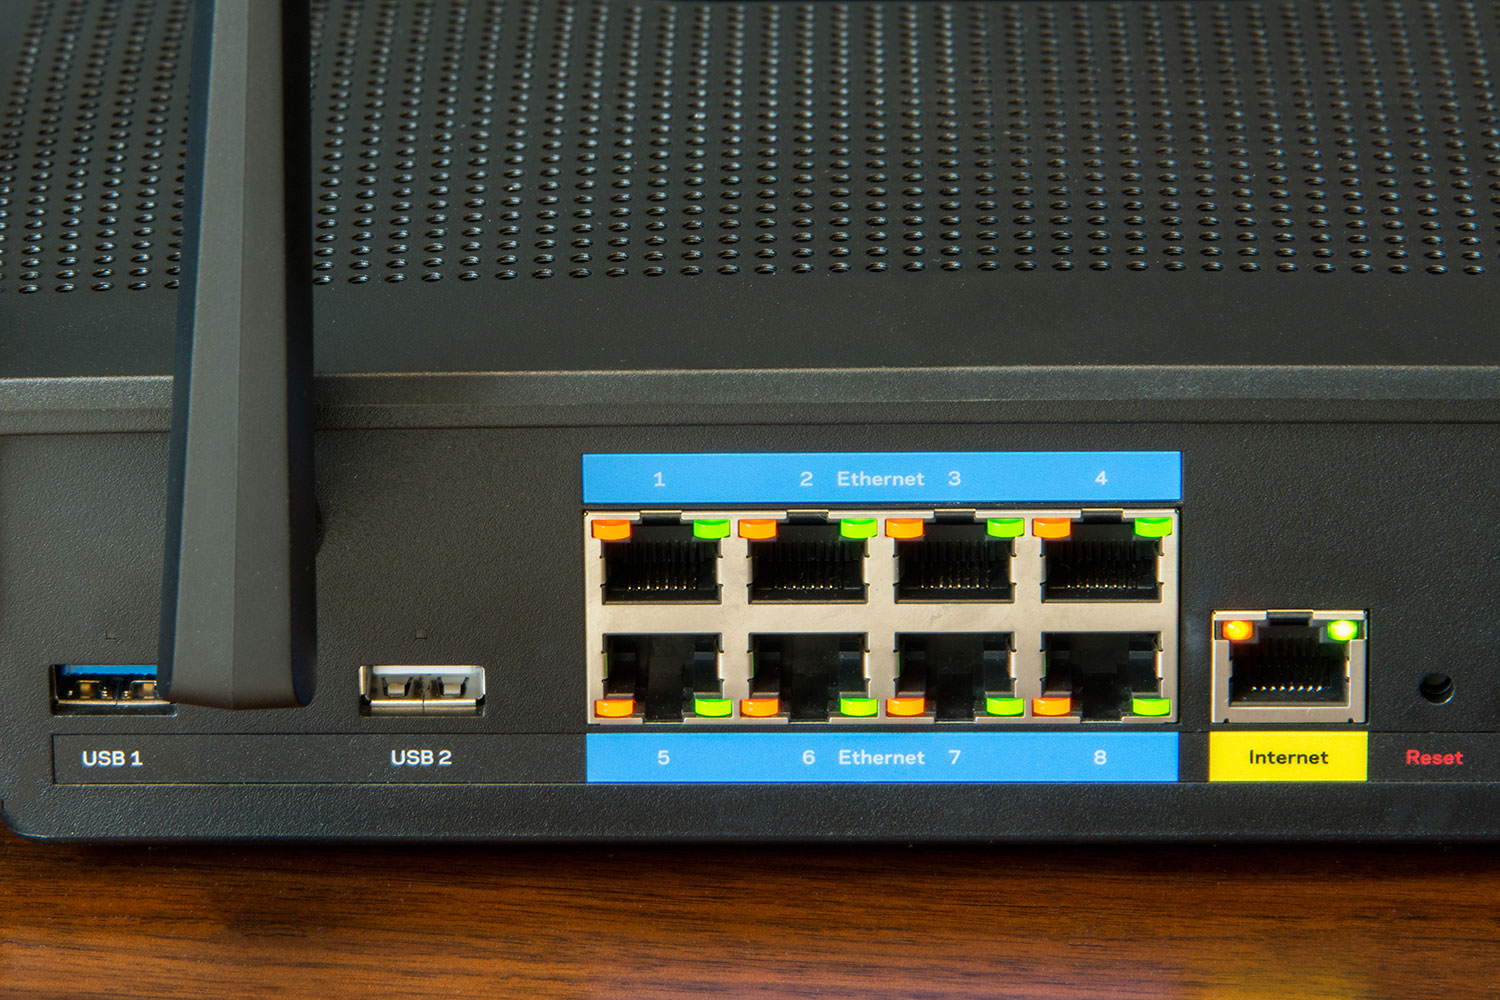 The Linksys Ea9500 Router Can Fill Any House With Great Wi